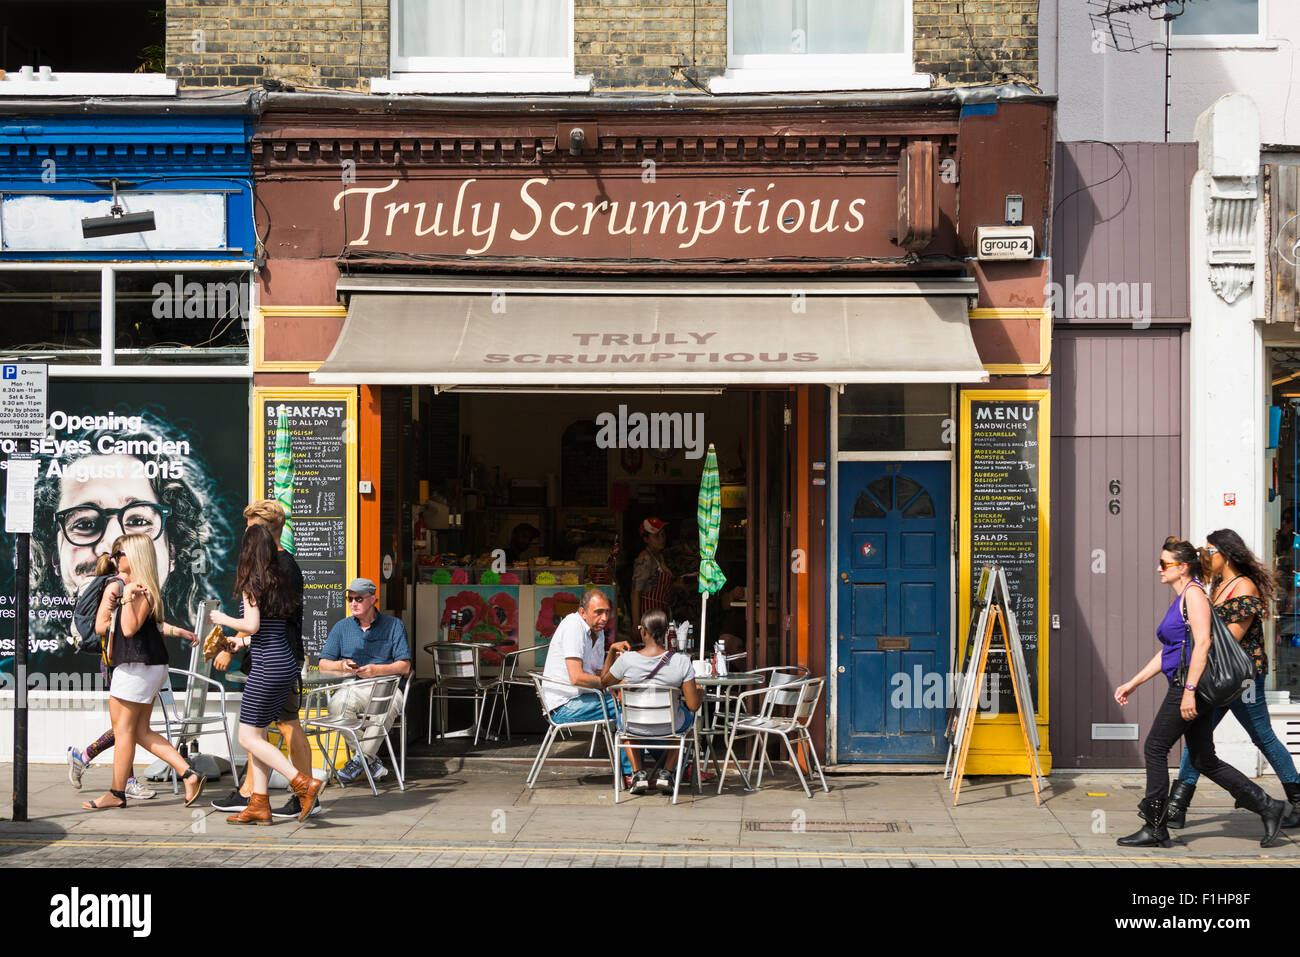 London , Chalk Farm , Camden Town , Truly Scrumptious pavement cafe snack bar cafe fast food English breakfast sandwiches Stock Photo